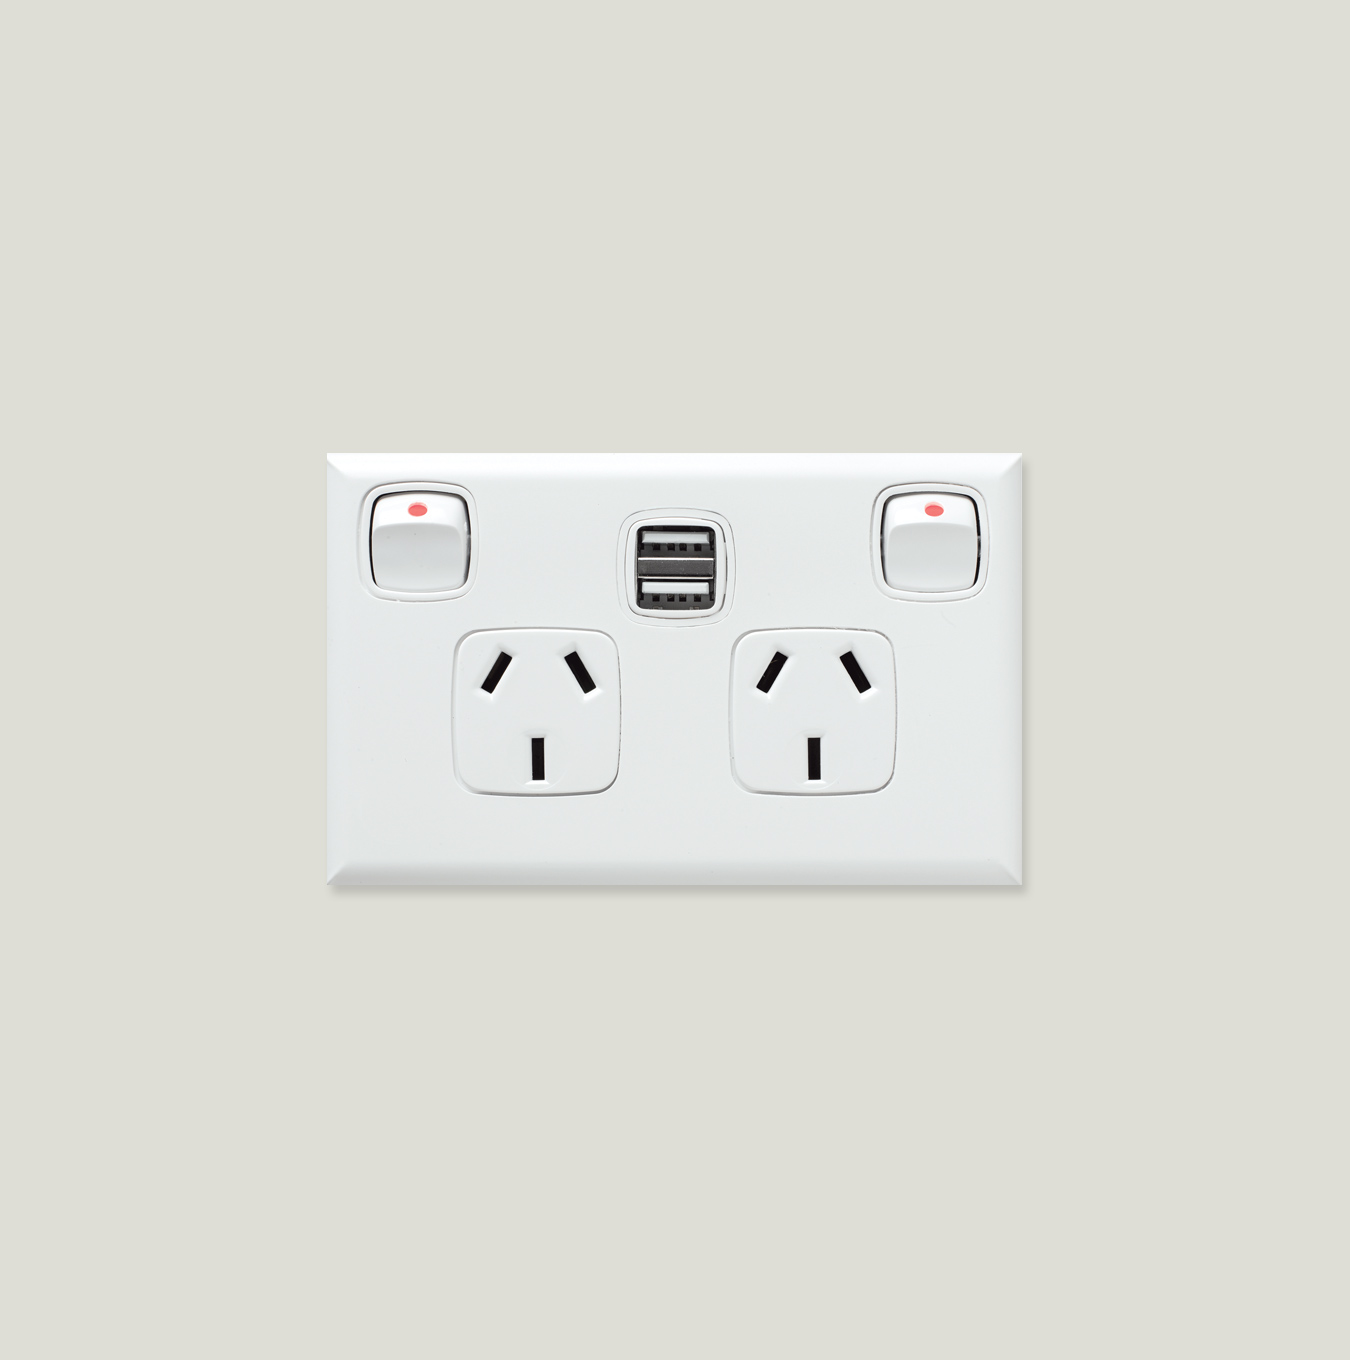 Excel Usb Powerpoint Au Site Power Point Wiring Diagram Australia Together With Light Switch